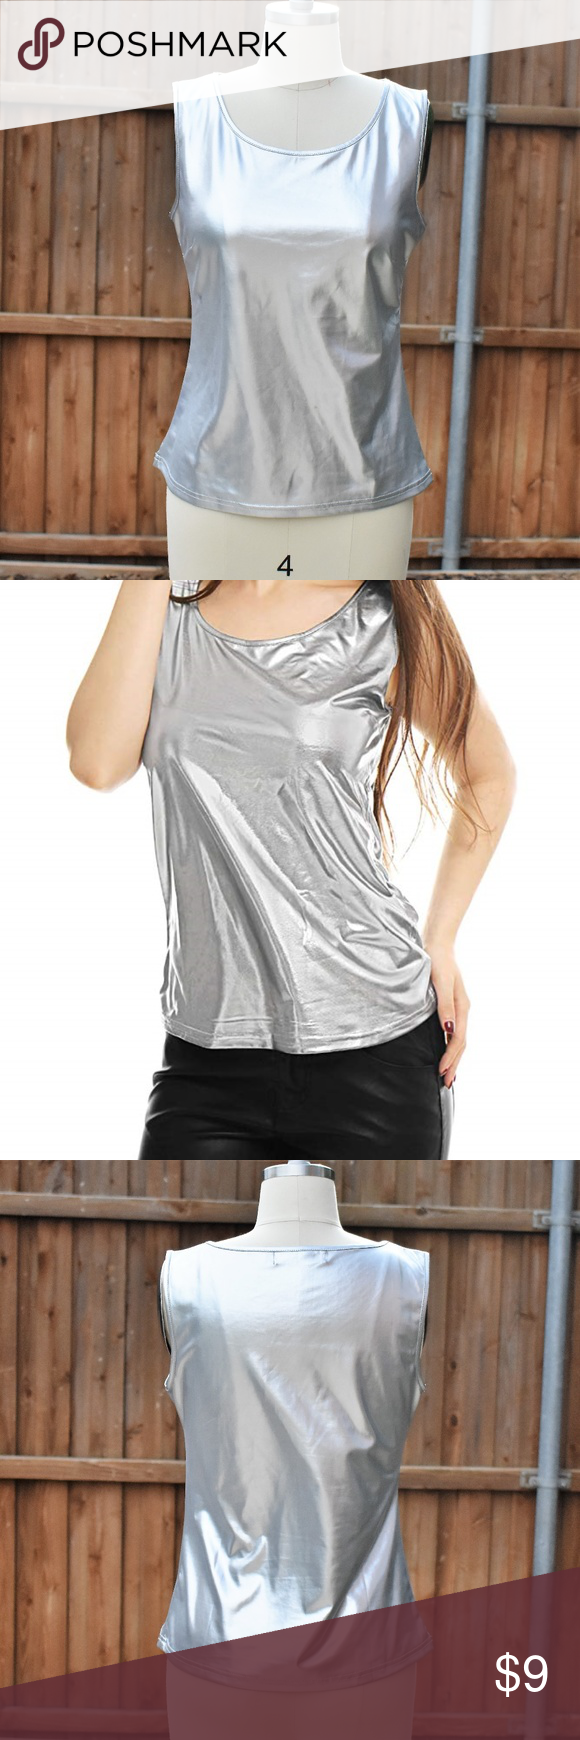 0e128e49166f3d Allegra K Stretchy Slim Fit Metallic Silver Top Cute top worn only once for  a dance